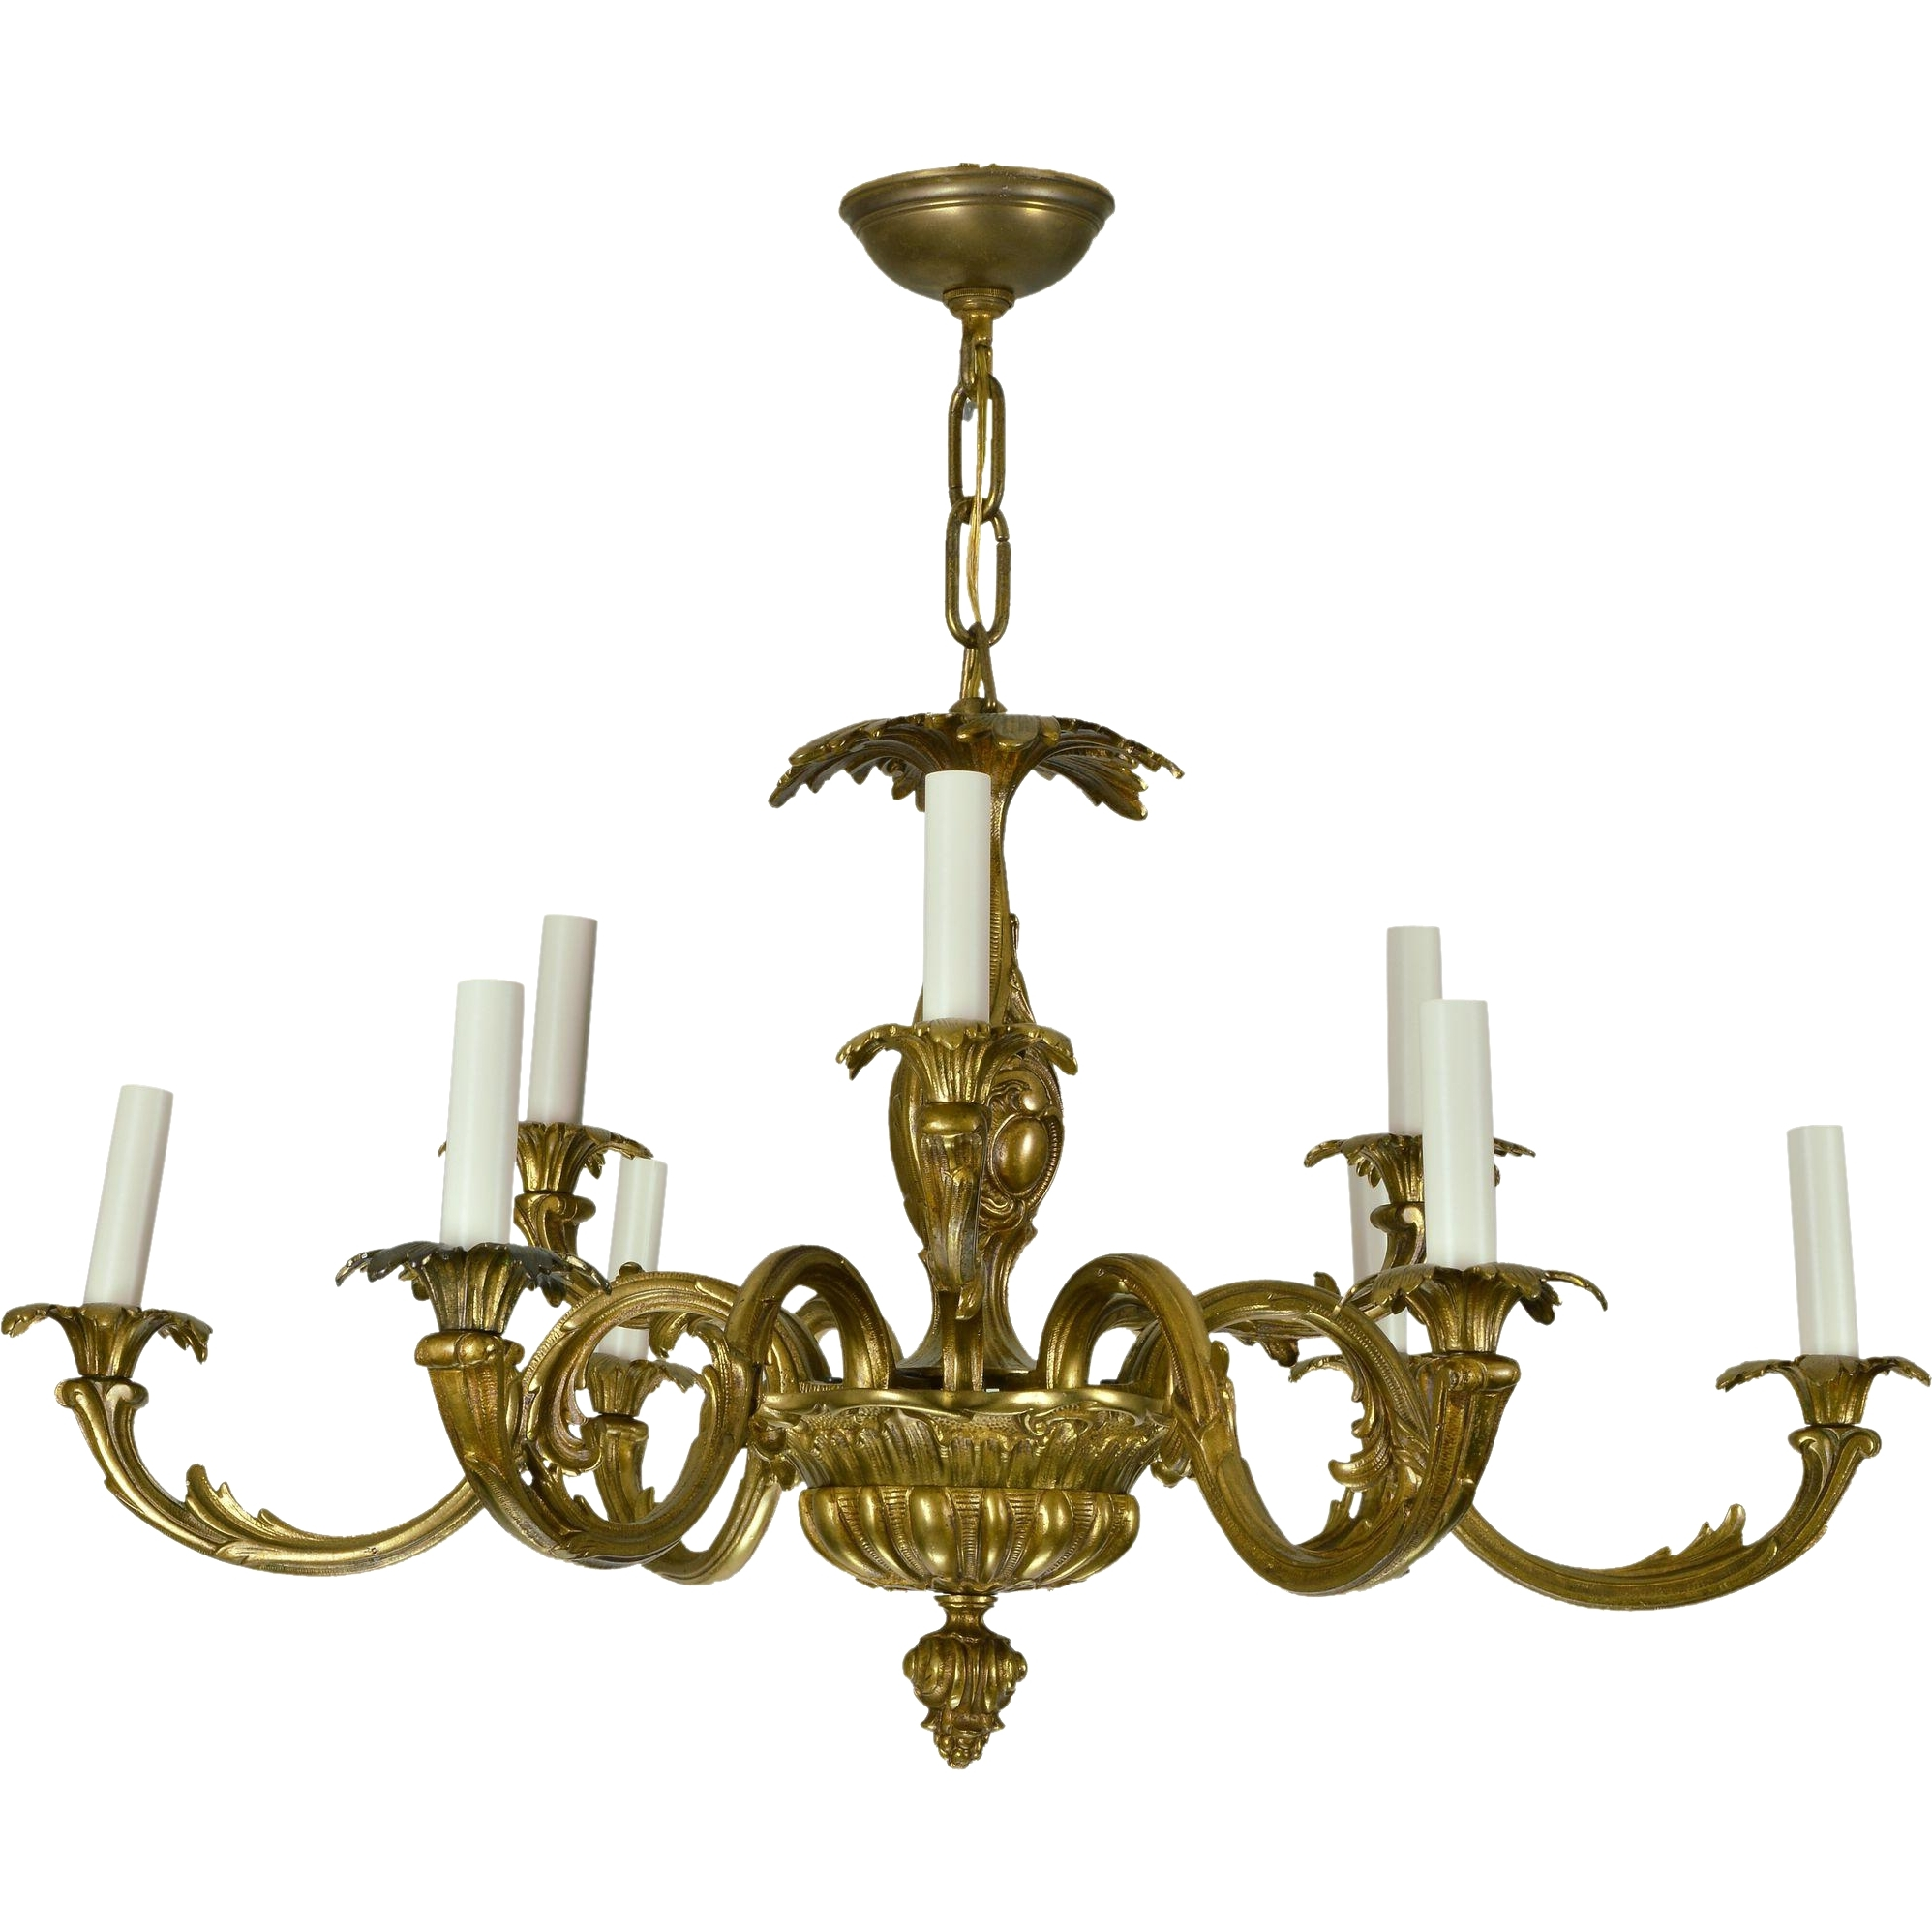 Old Brass Chandelier For Current Home Design : Graceful Antique Brass Chandeliers Vintage Chandelier (View 13 of 20)